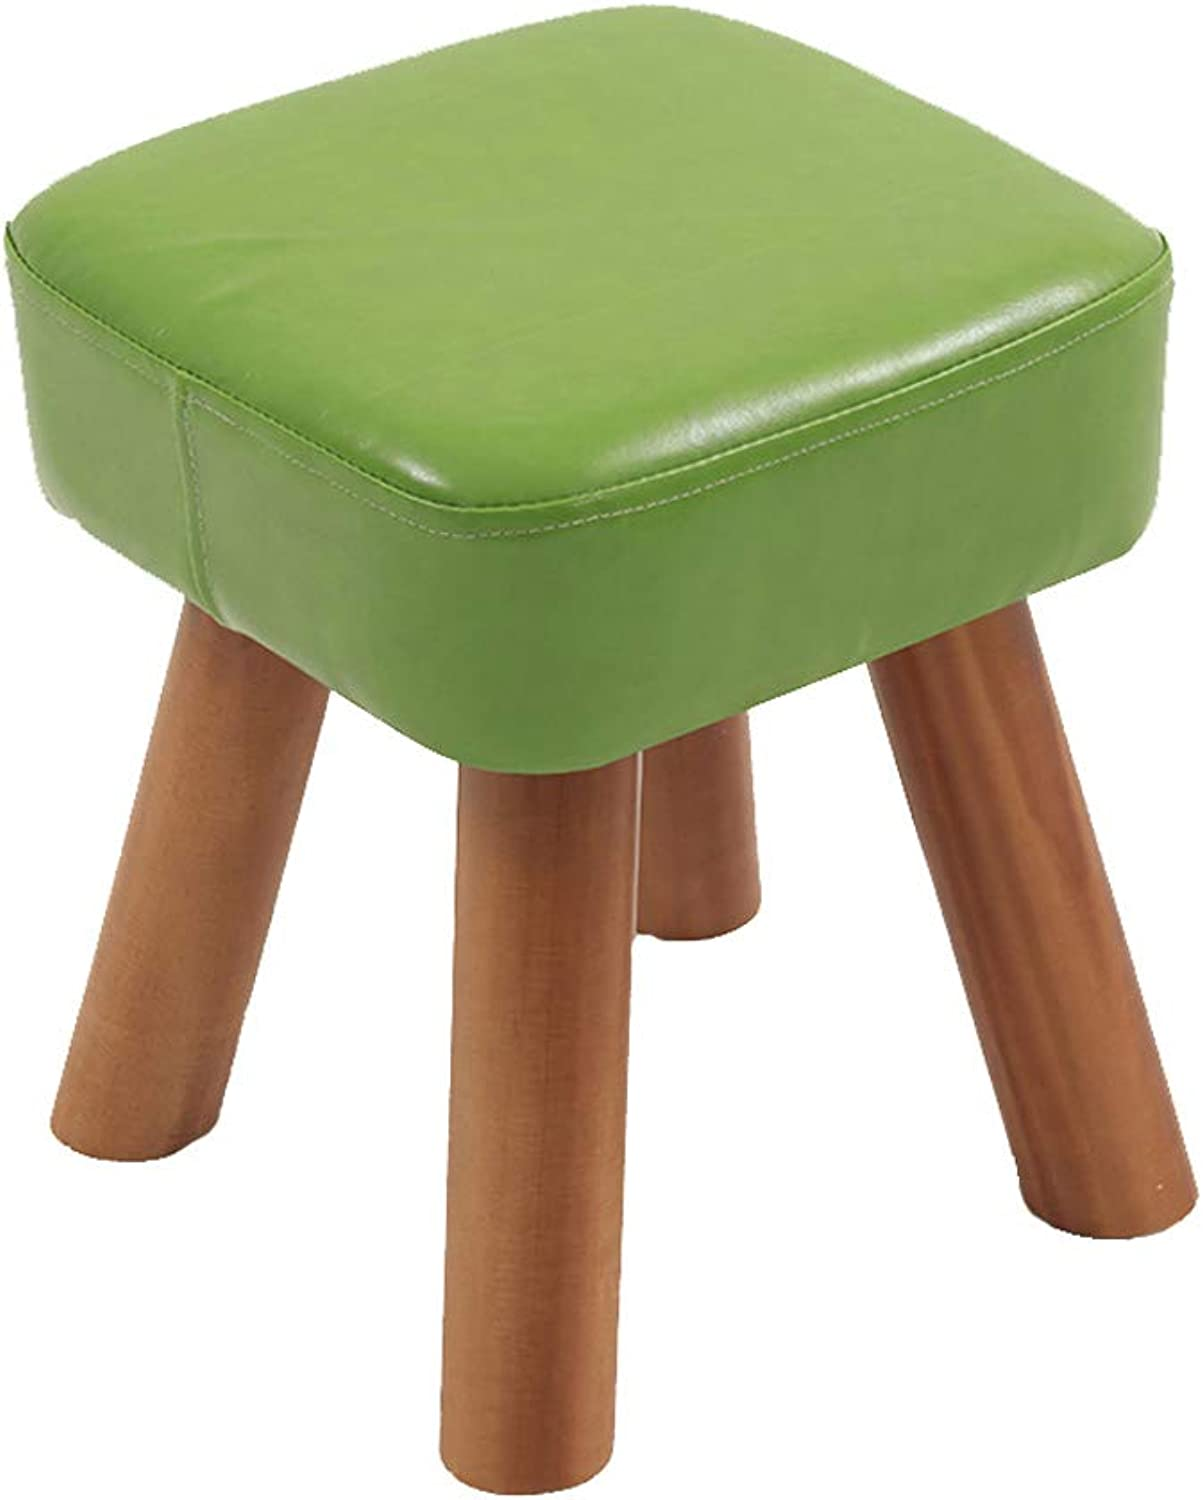 HLJ Simple Change shoes Stool Solid Wood Home Small Bench Fashion Creative Living Room Sofa Stool (Size   28  28  32cm)